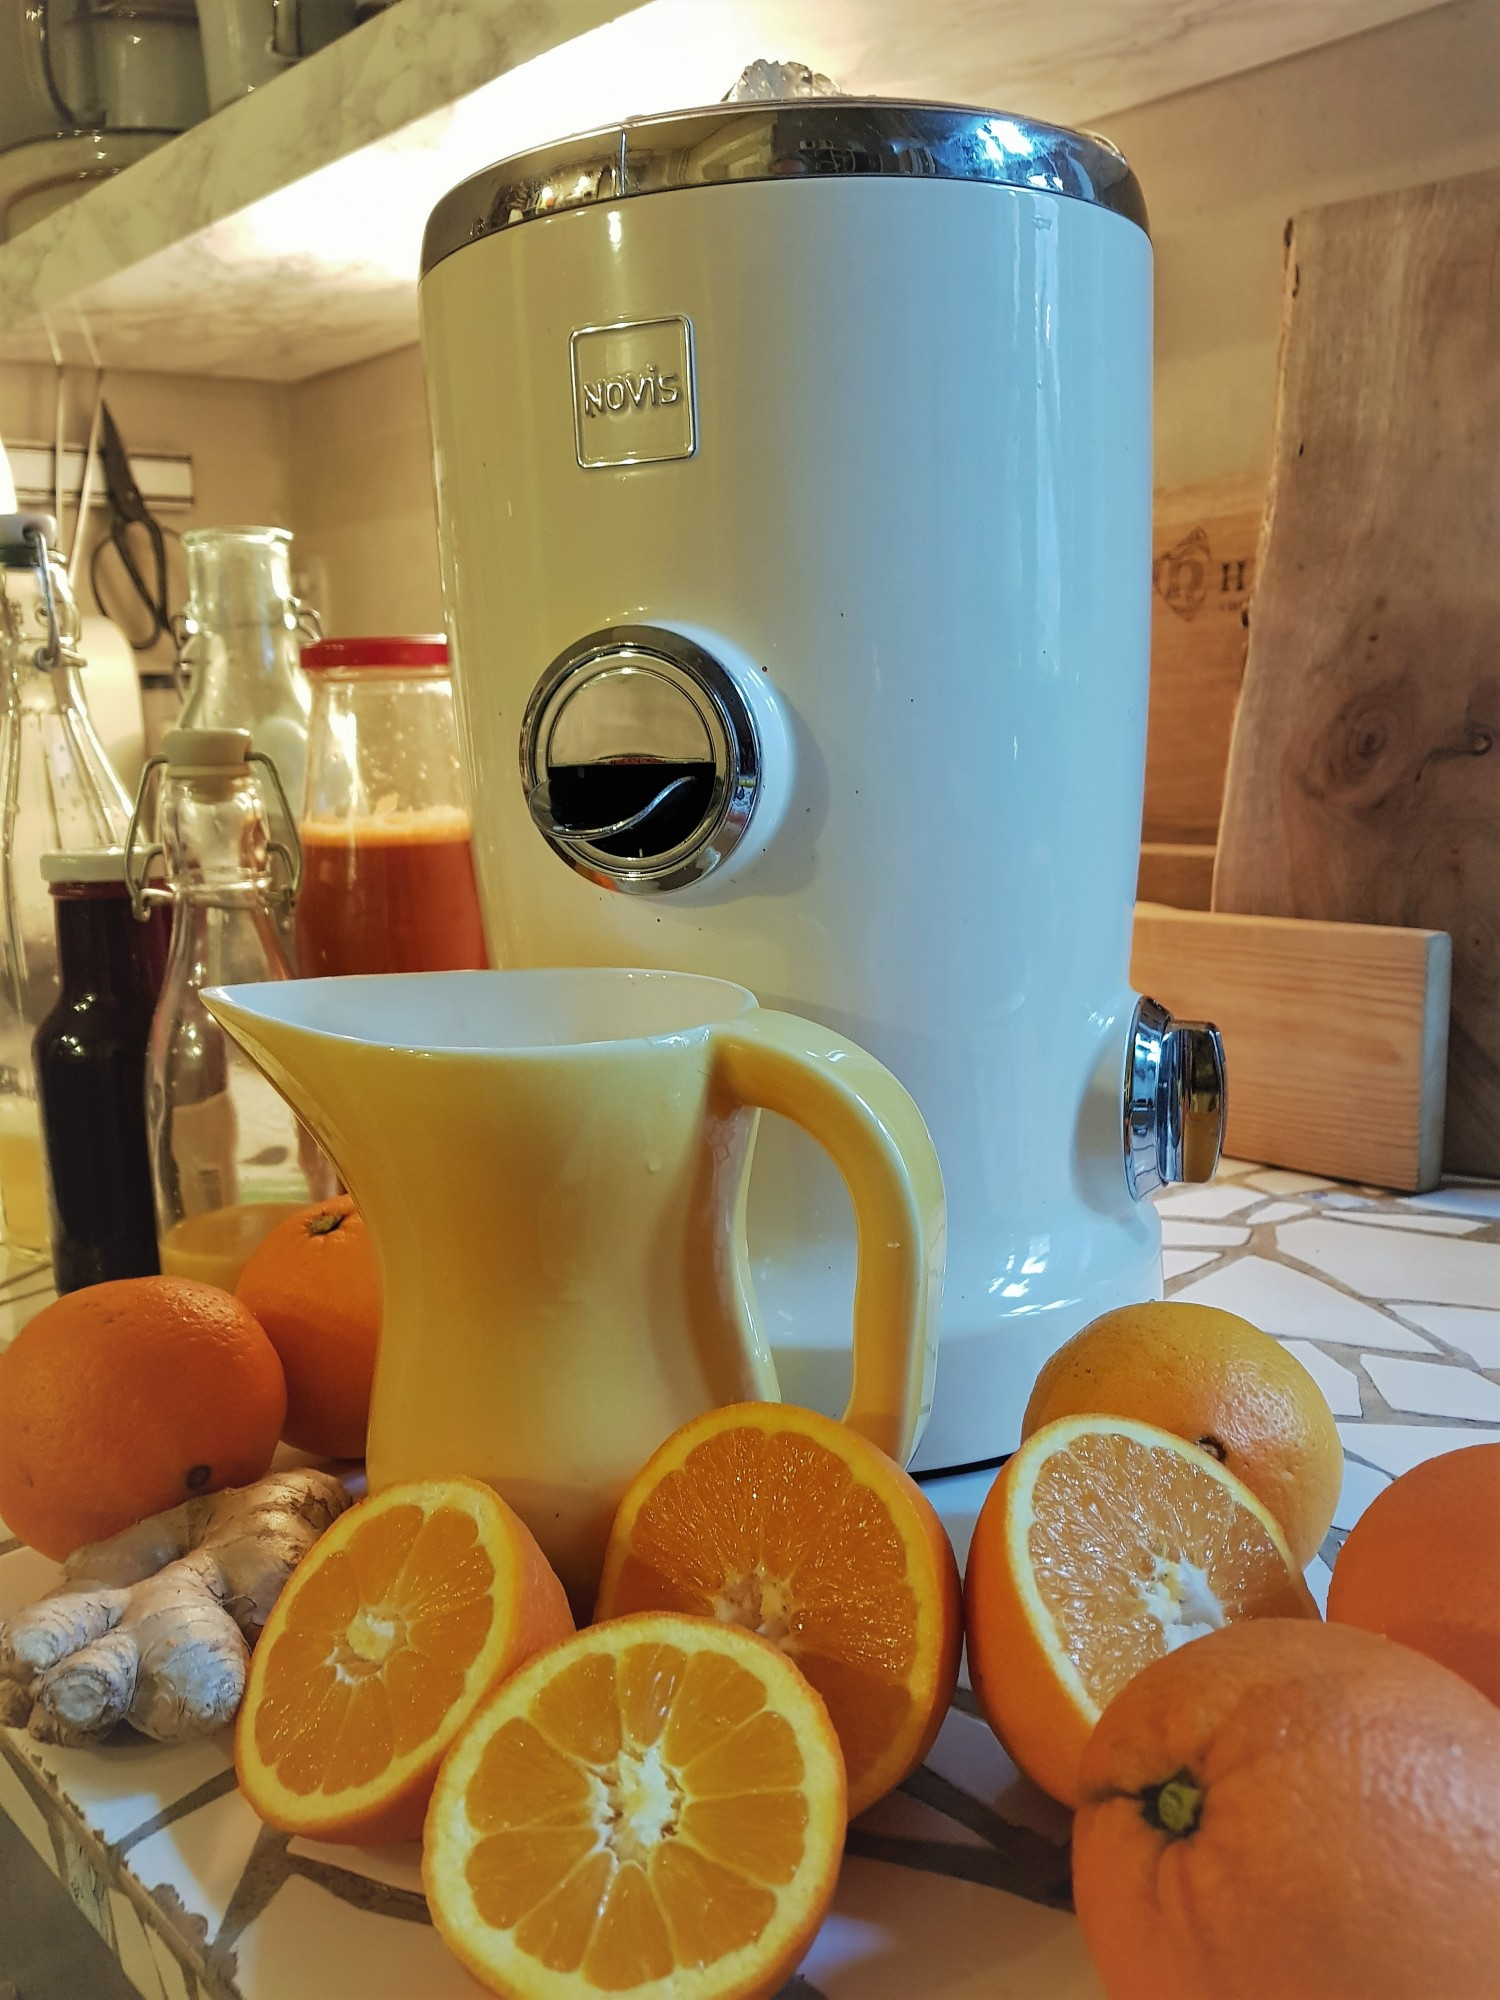 At this time of year it is really a good help with a juicer to get a lot of vitamin C. I use it in any juice .